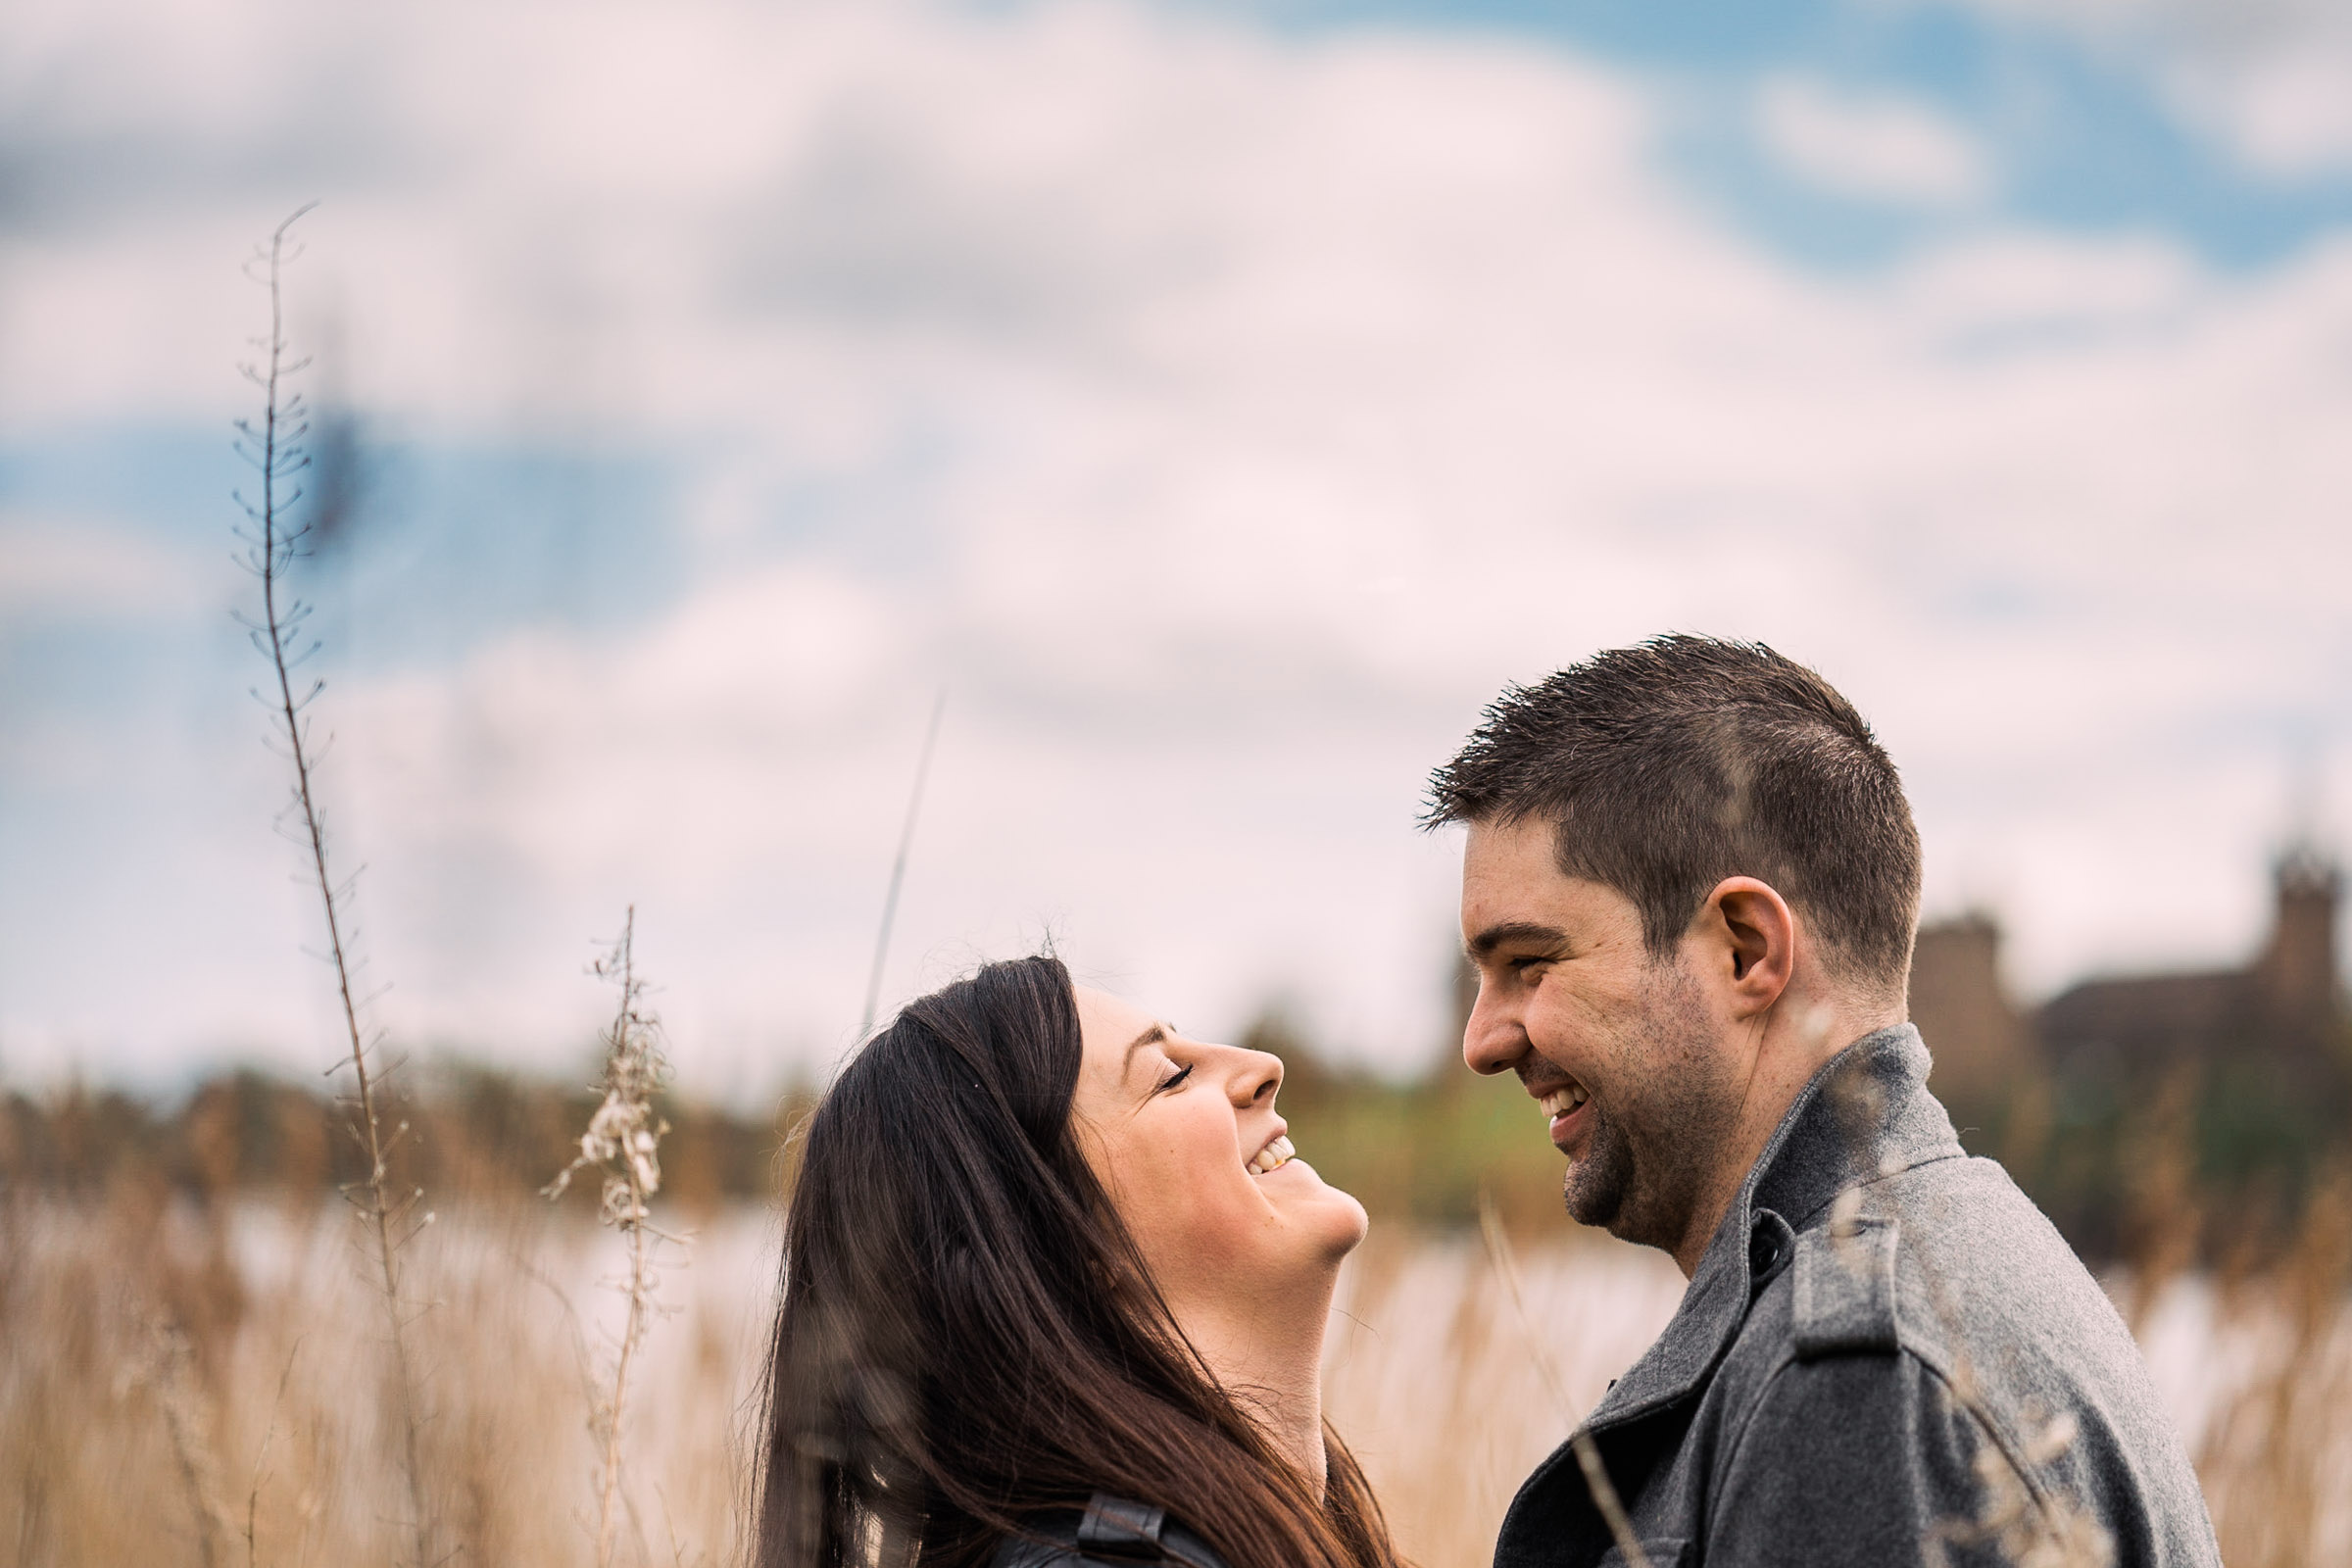 scottish-engagement-photography-elopement-dearlyphotography (37 of 45).jpg